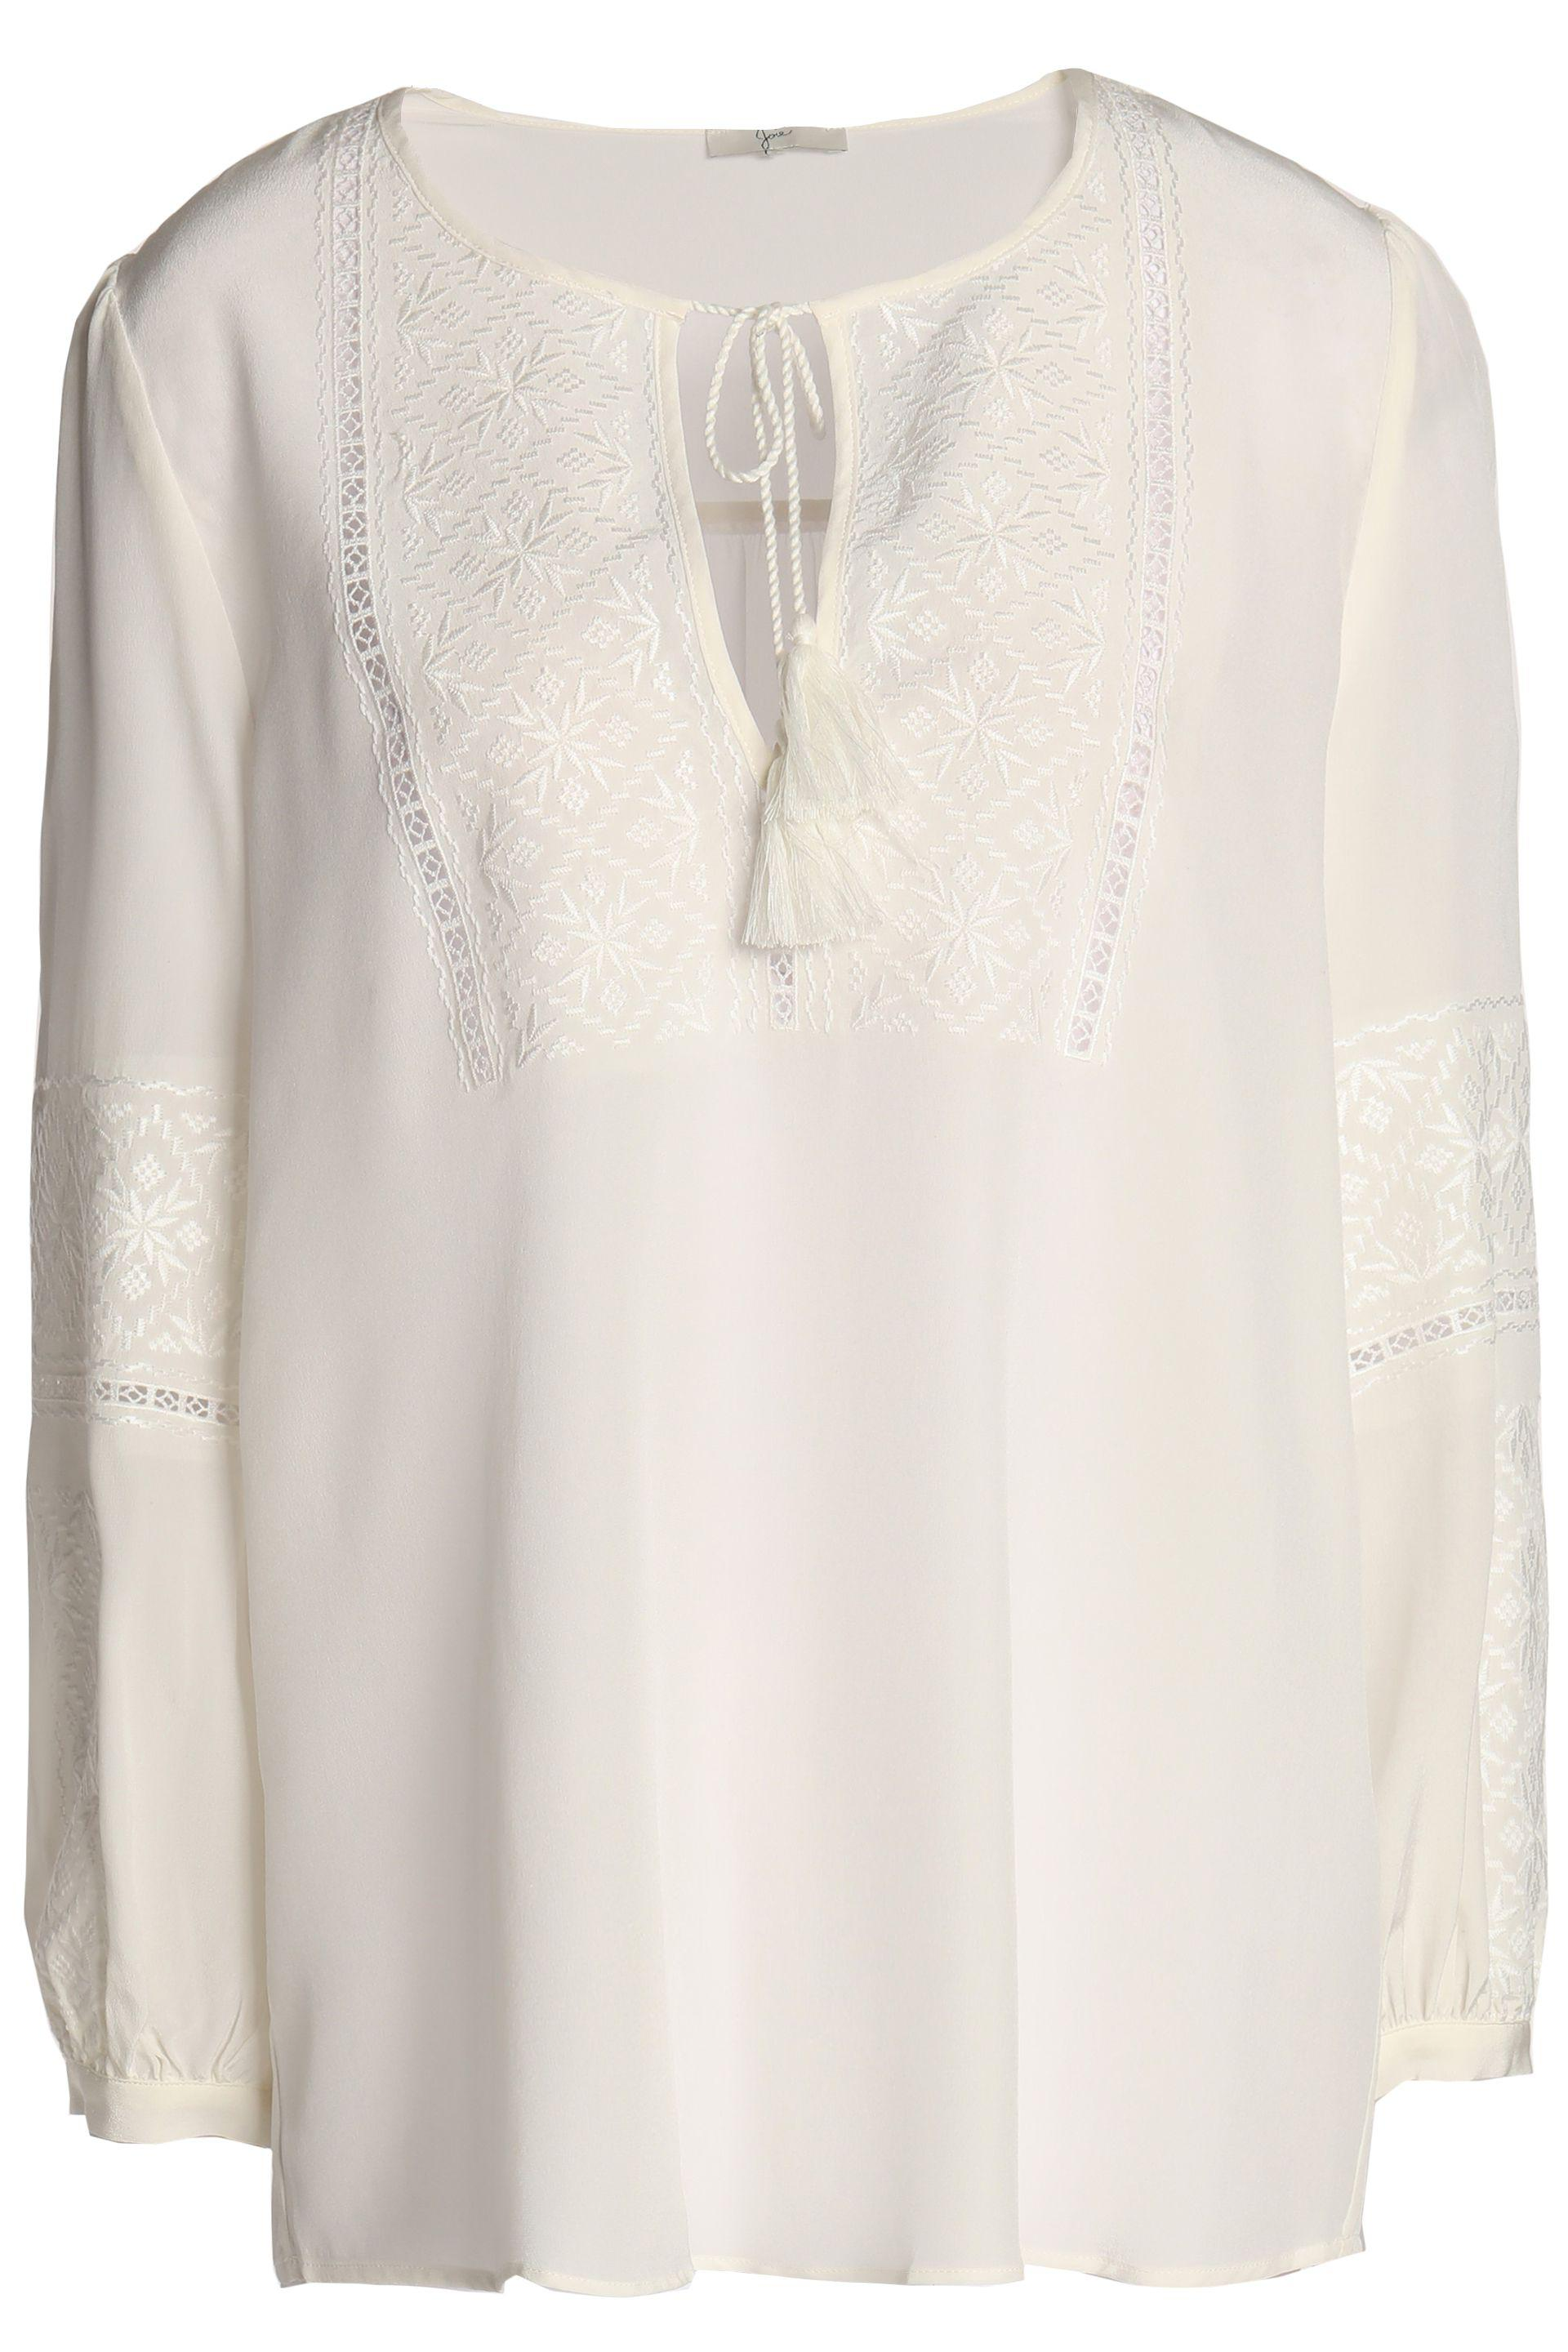 Joie Woman Tasseled Embroidered Silk Crepe De Chine Blouse White Size L Joie Free Shipping Marketable dnr2w